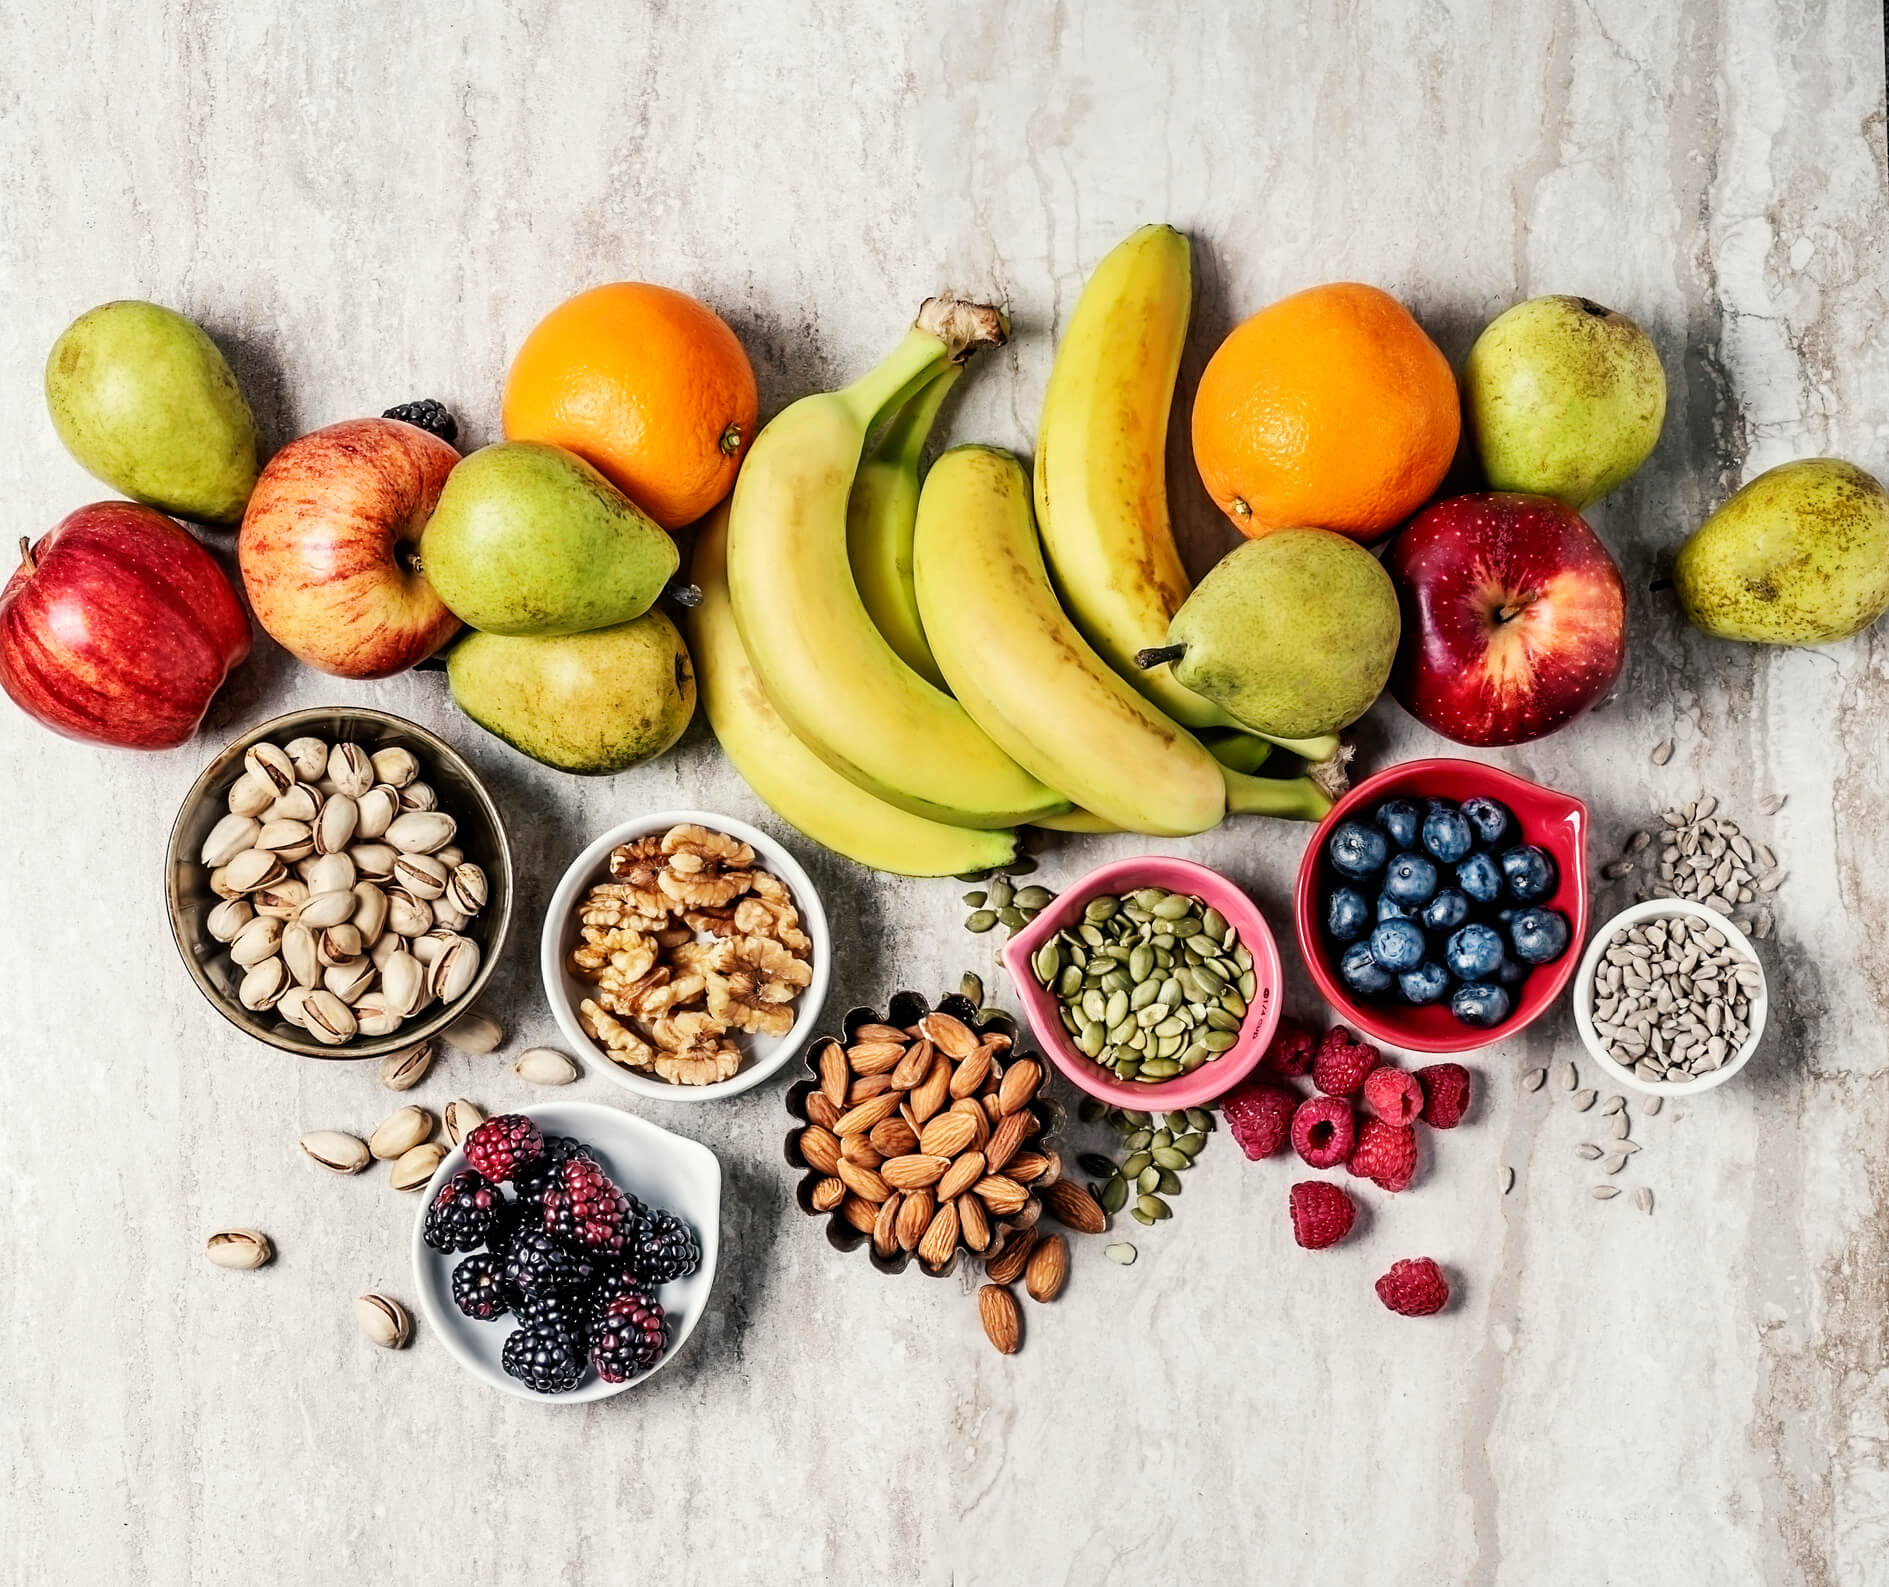 Office snack bar with fruits and nuts